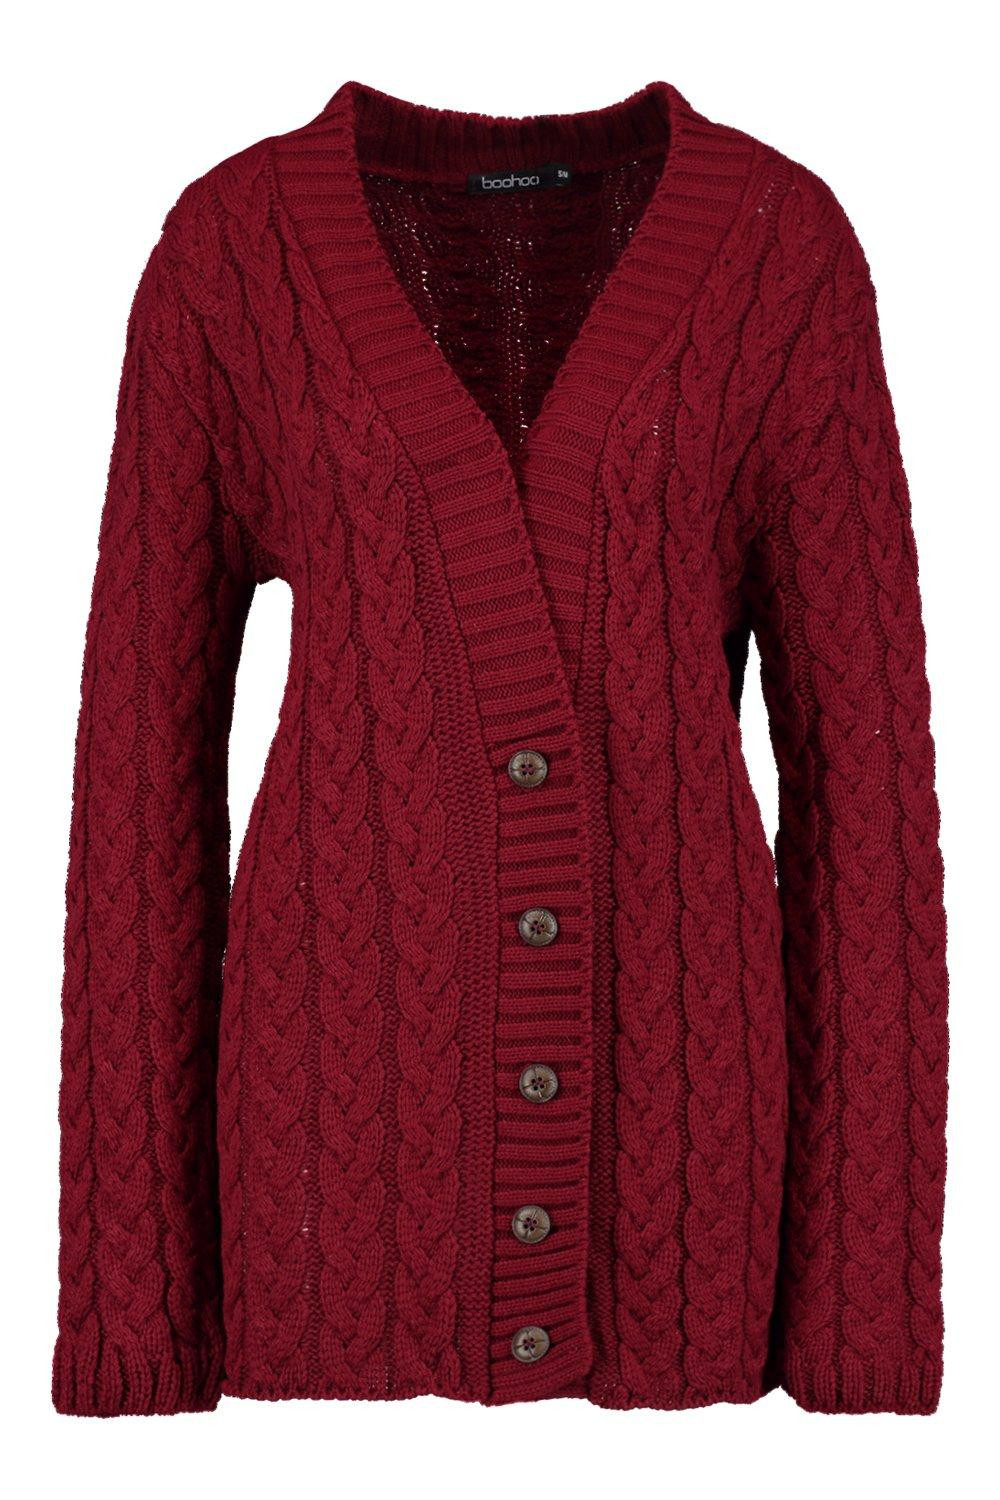 Womens Cable Knit Sweater New Boohoo Womens Lucy Cable Knit Cardigan Of Innovative 44 Pics Womens Cable Knit Sweater